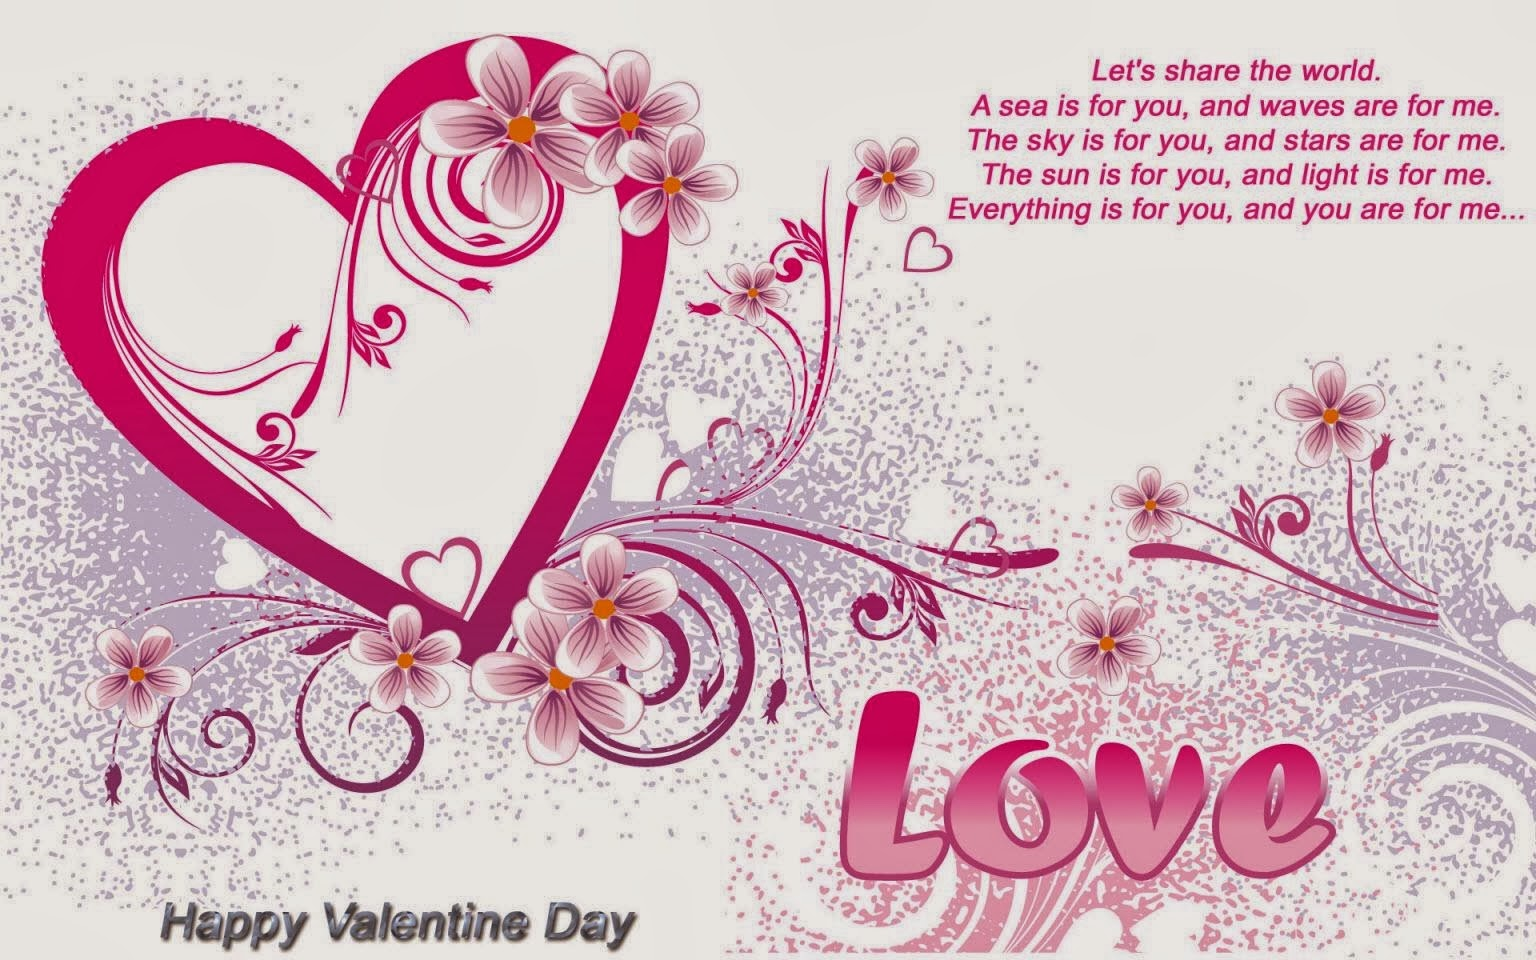 5hd happy valentines day 2014 greetings collection with love quotes the above 5hd happy valentines day 2014 greetings collection with love quotes customized for whatsapp messenger for android to send to whatsapp lovers or kristyandbryce Images